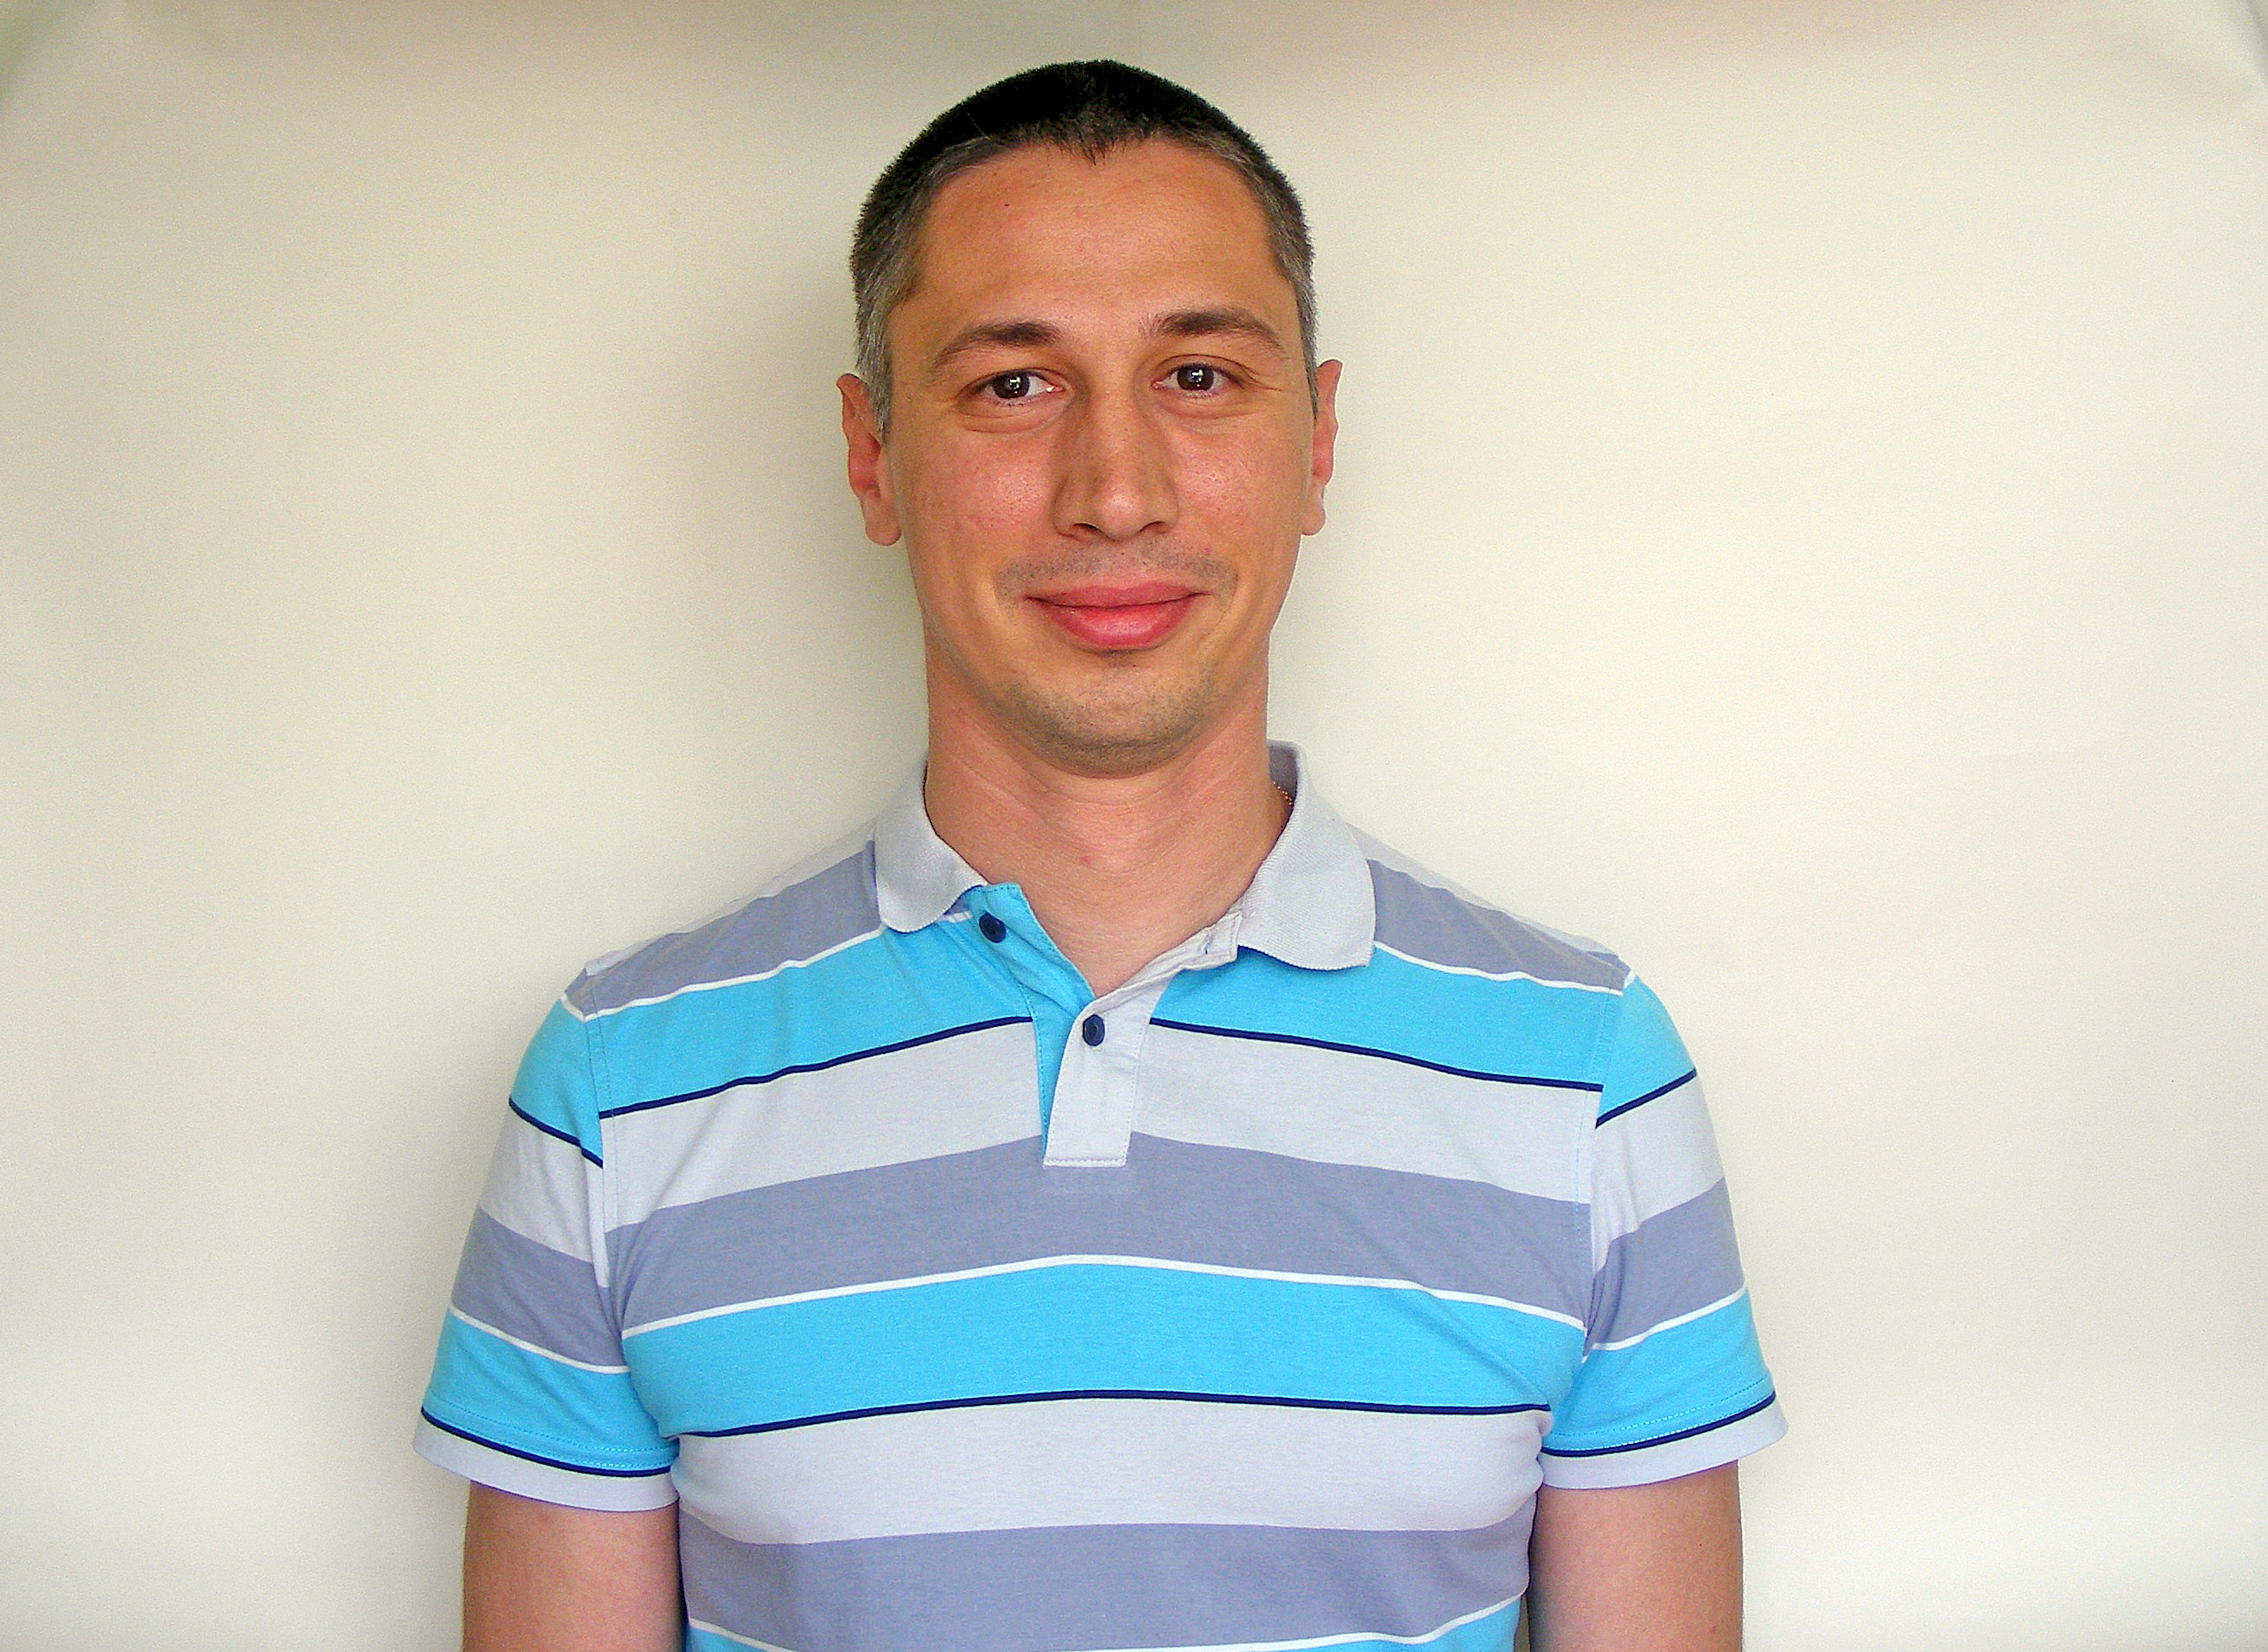 Mr. Kirill Turgenev - General Manager, SM Contact Engineering